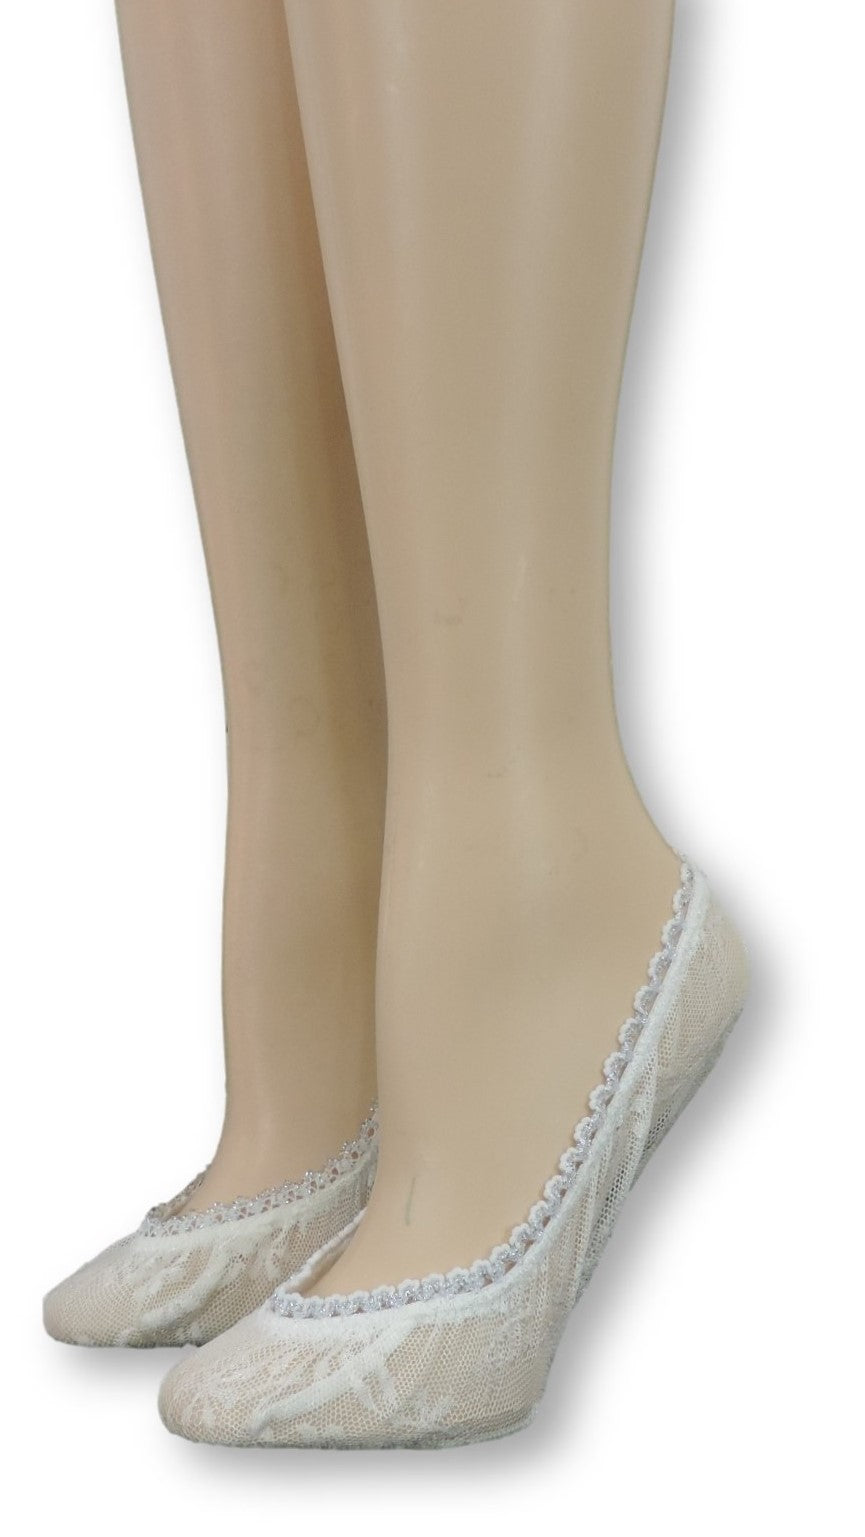 Pearl Ankle Socks with Glitter Lace